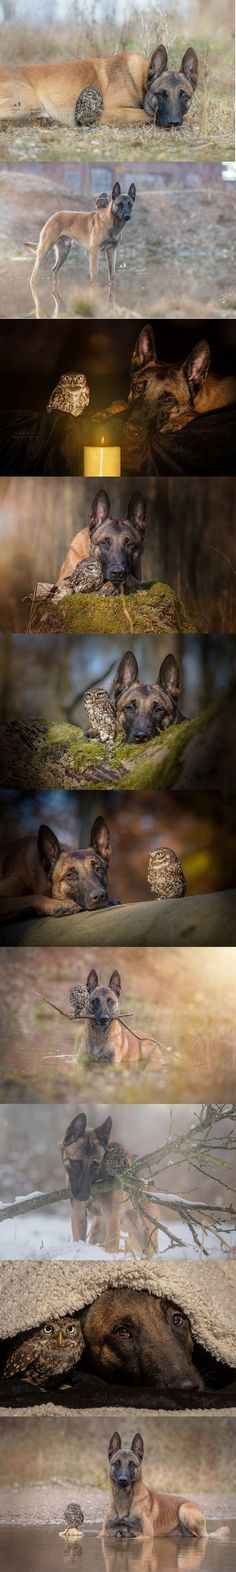 Owl & dog are unlikely animal friends! Animals And Pets, Baby Animals, Funny Animals, Cute Animals, Beautiful Creatures, Animals Beautiful, Unlikely Animal Friends, Amor Animal, Odd Couples